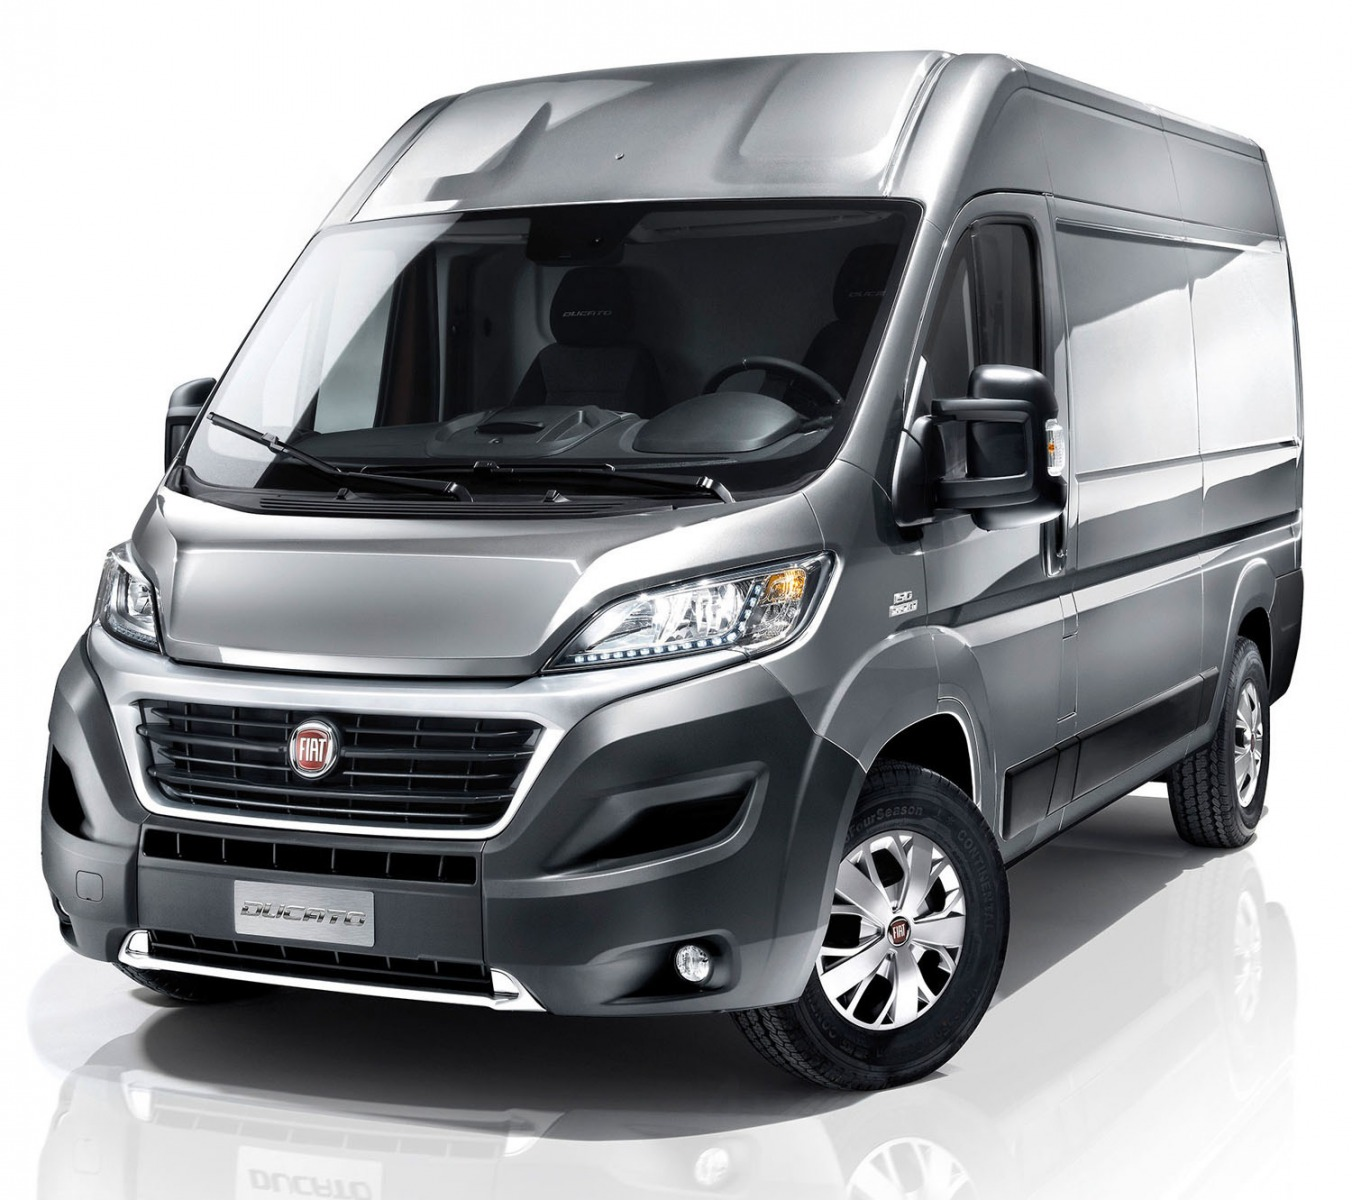 fiat ducato 2014 hws autohaus damisch gmbh. Black Bedroom Furniture Sets. Home Design Ideas